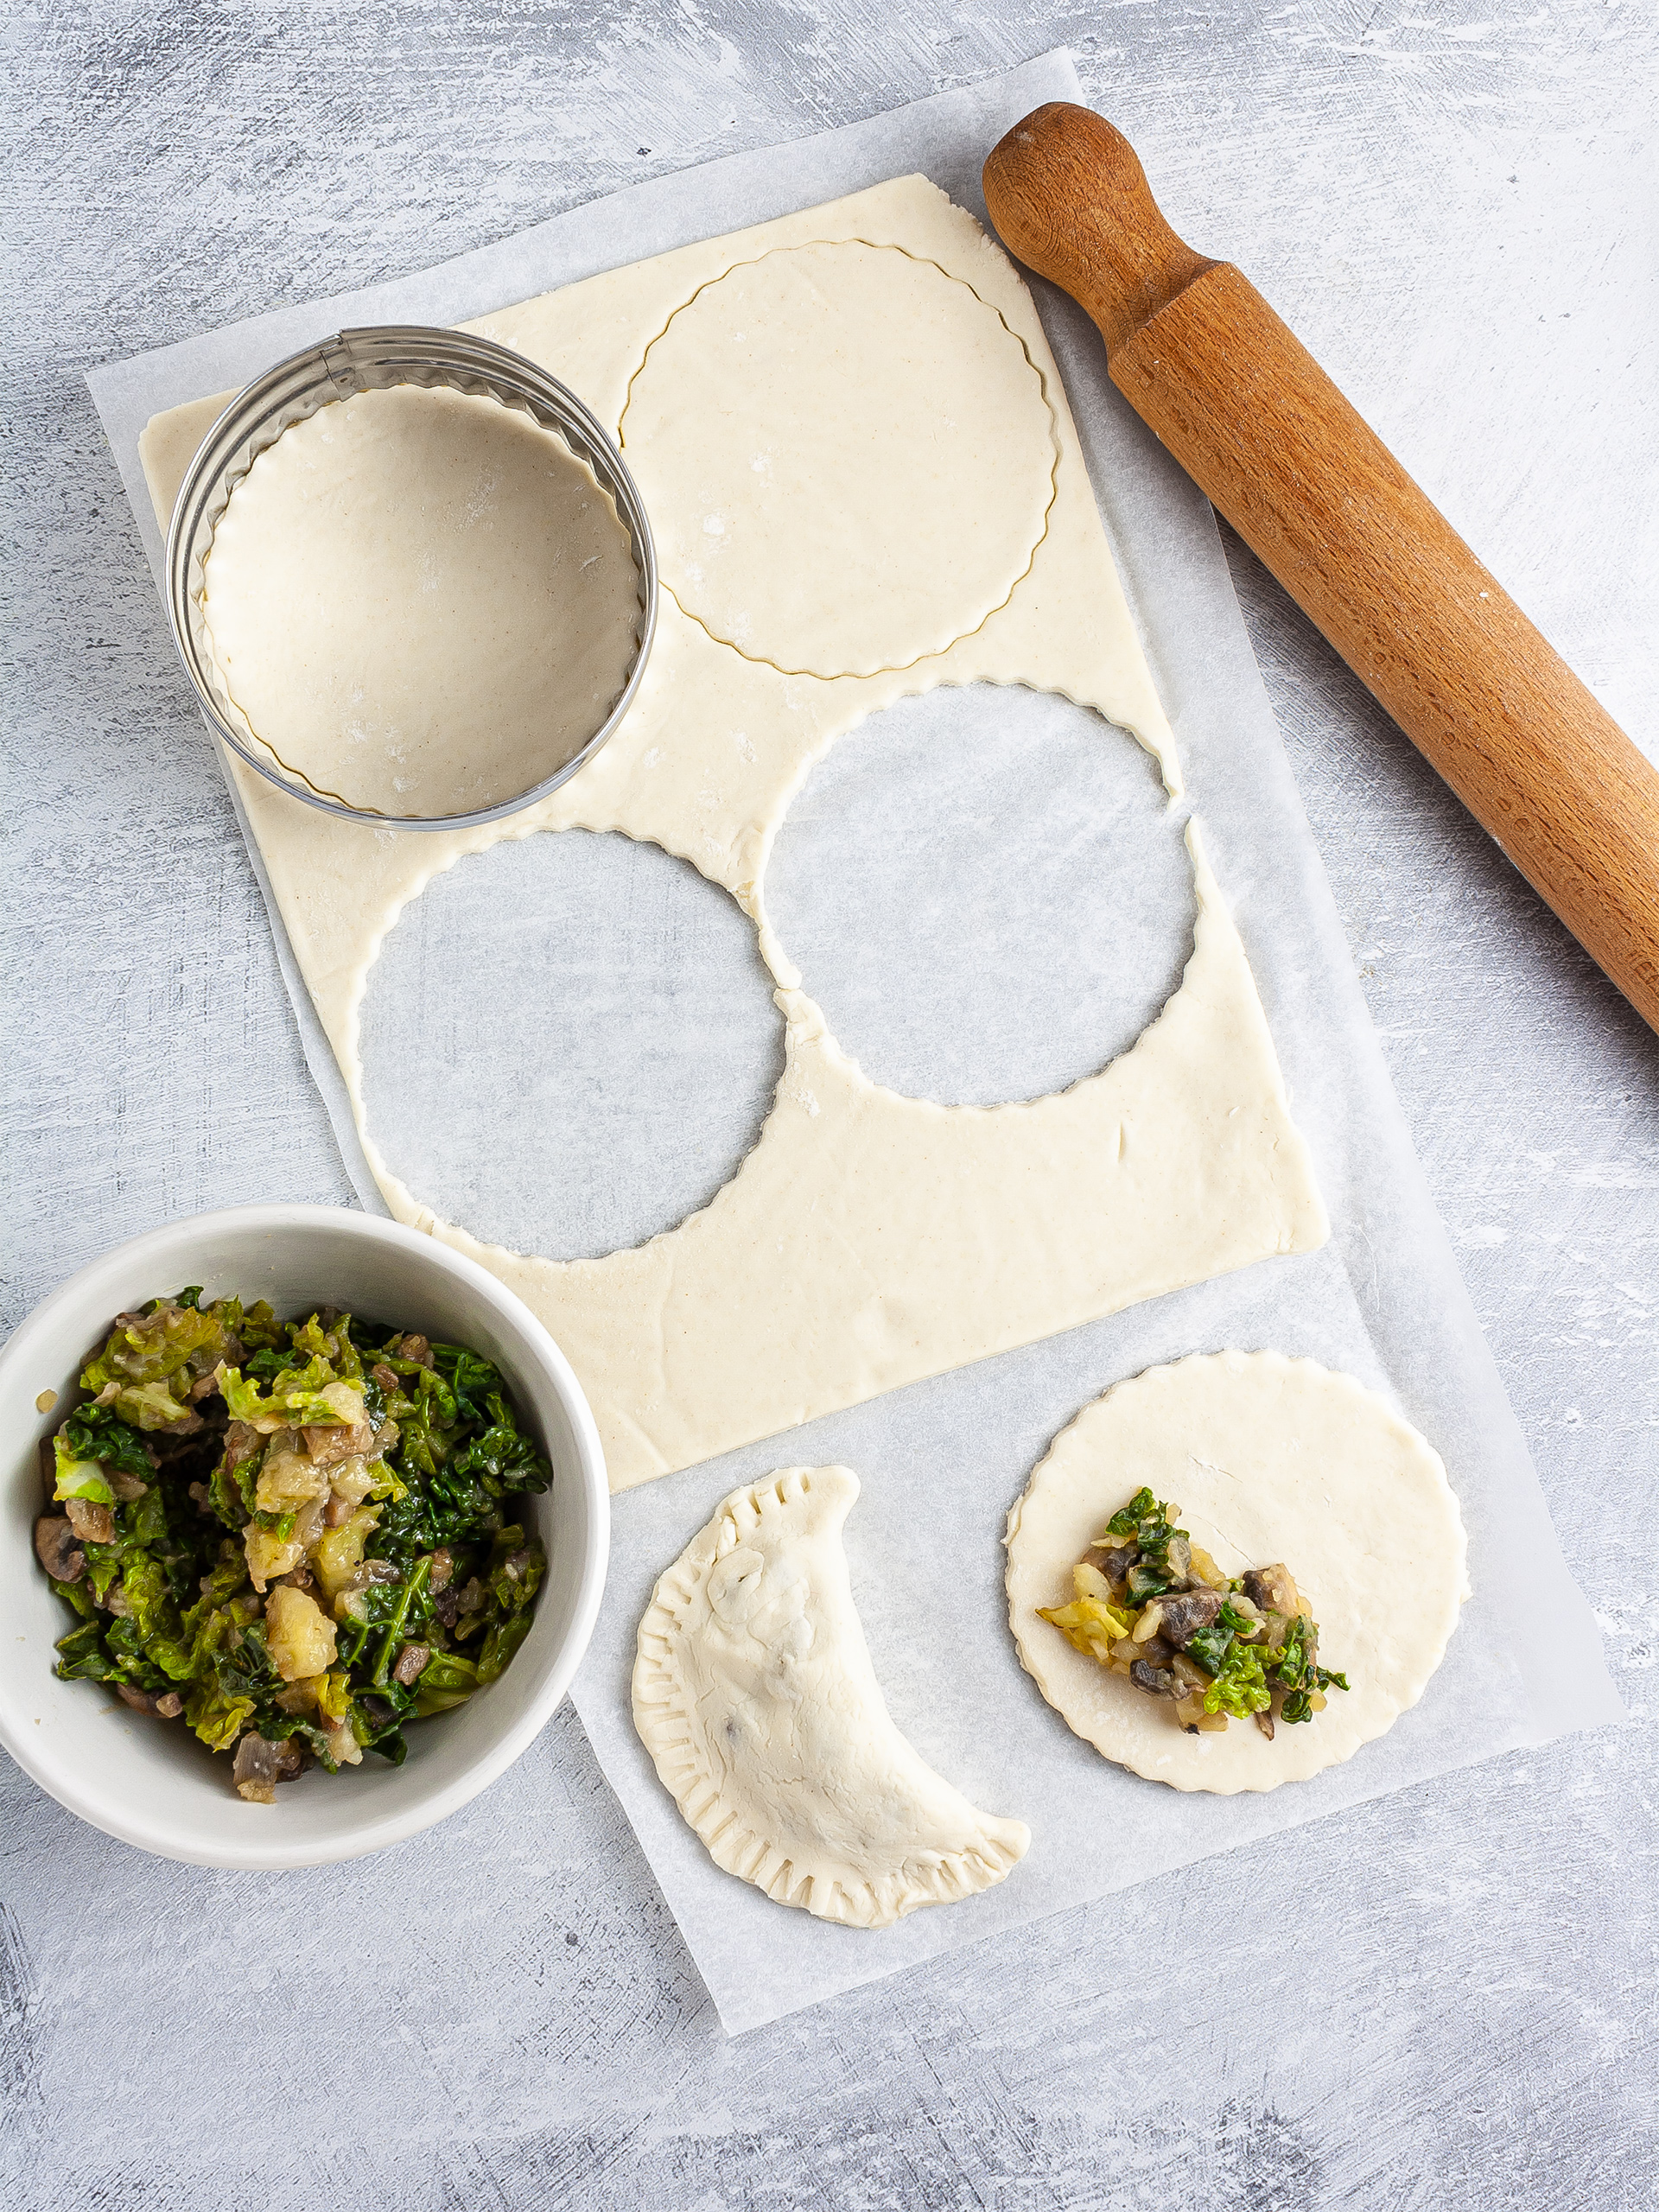 Cut and filled pierogies